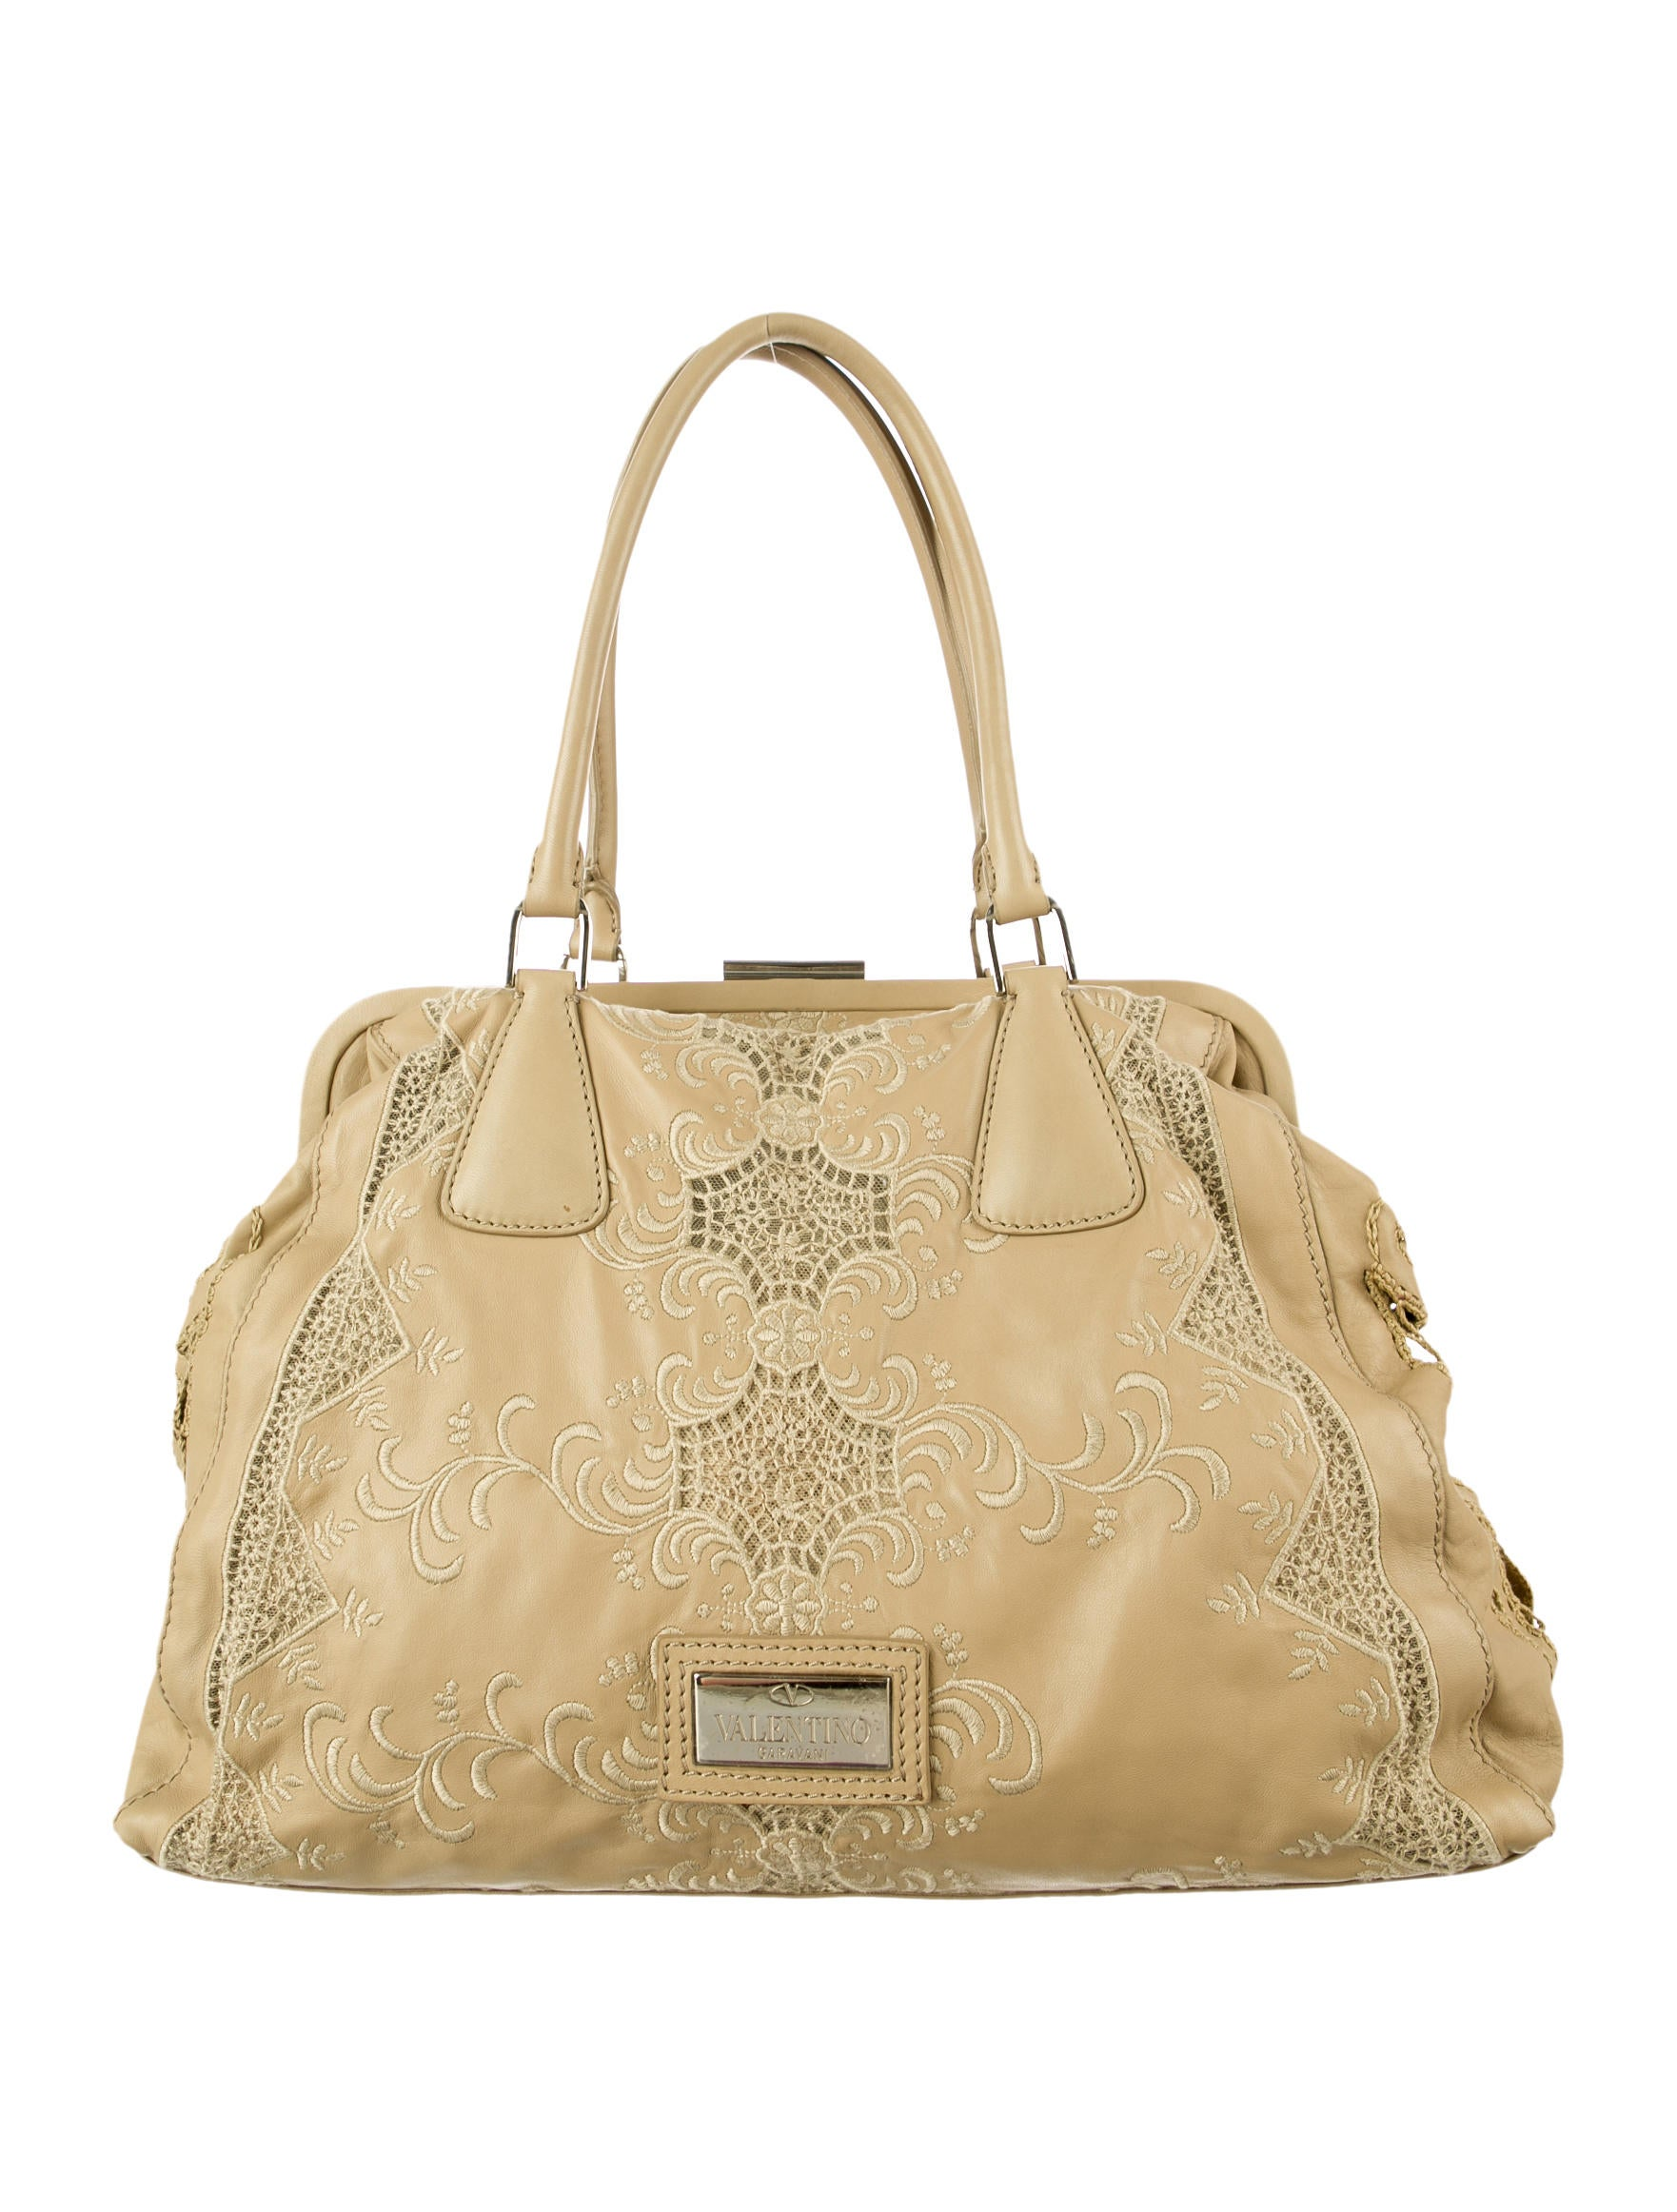 Valentino Lace Handle Bag Handbags VAL28456 The RealReal : VAL284561enlarged from www.therealreal.com size 1762 x 2324 jpeg 284kB